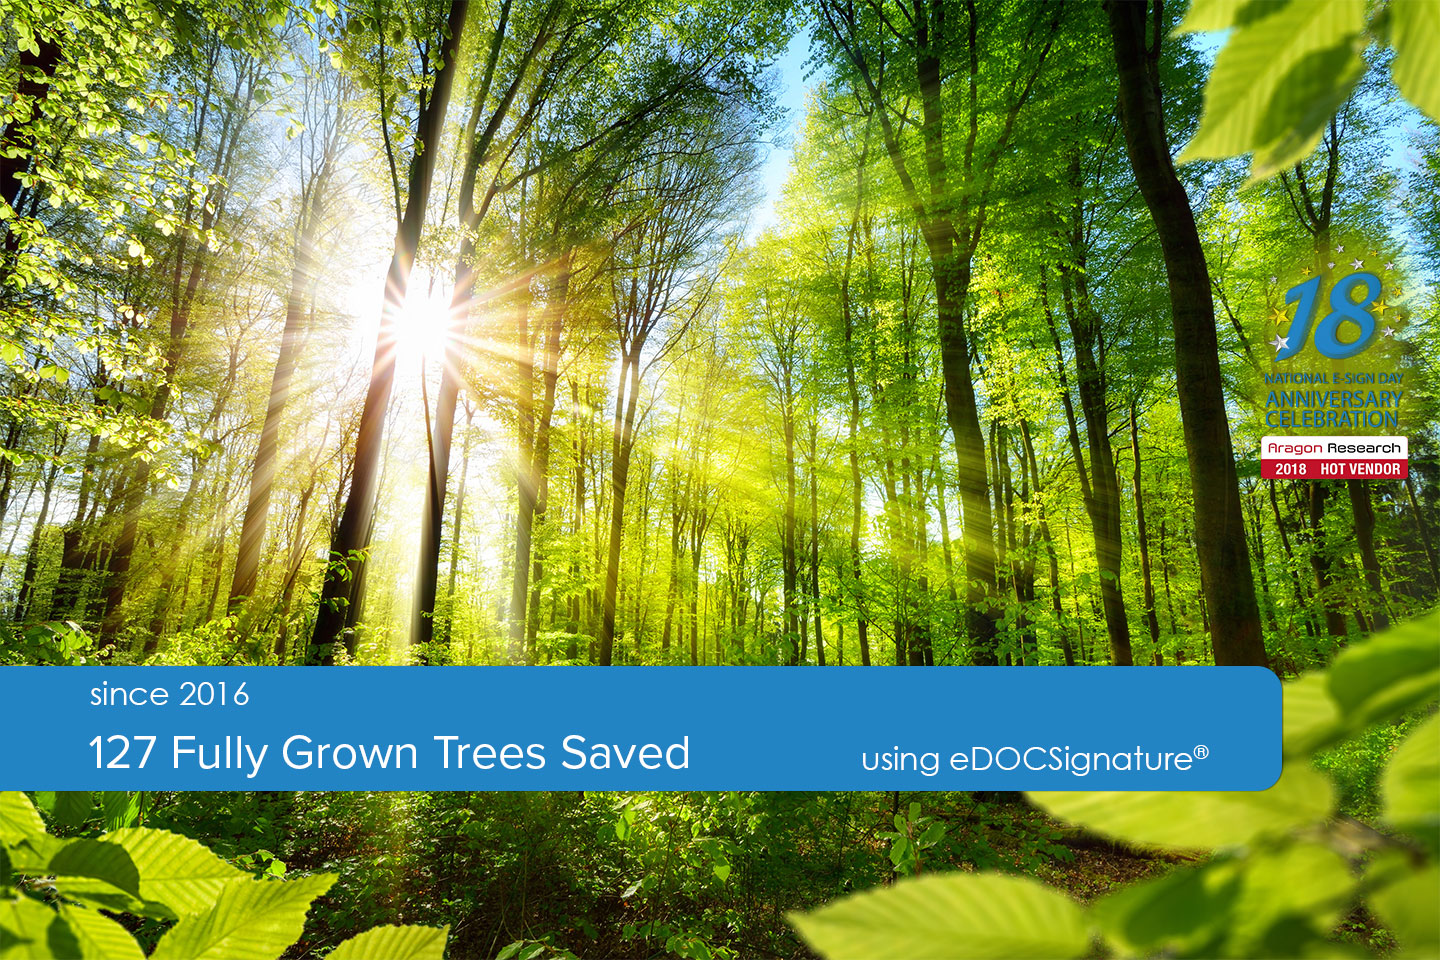 127 grown trees saved using eDOCSignature